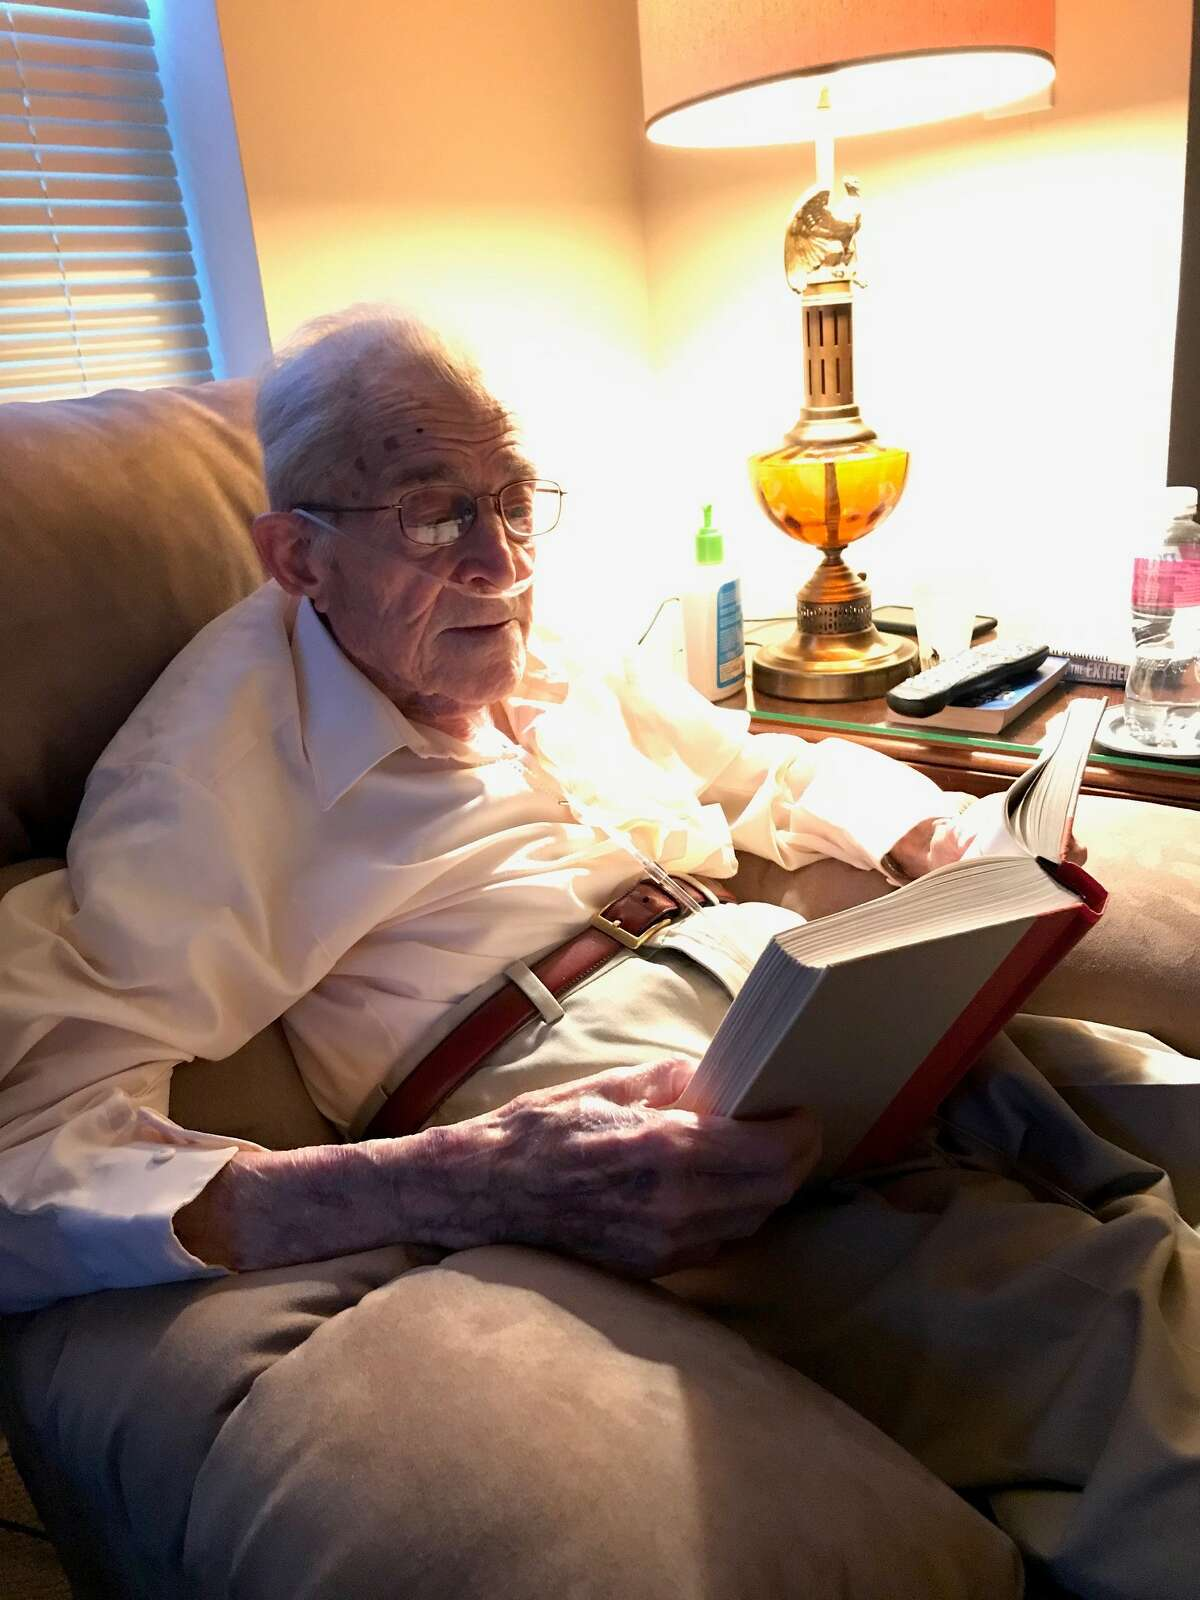 Don Black, a World War II vet, reads in his new electric recliner at Brookdale, an assisted-living facility in Niskayuna, six months after a terrifying fall and broken hip and cancer diagnosis.